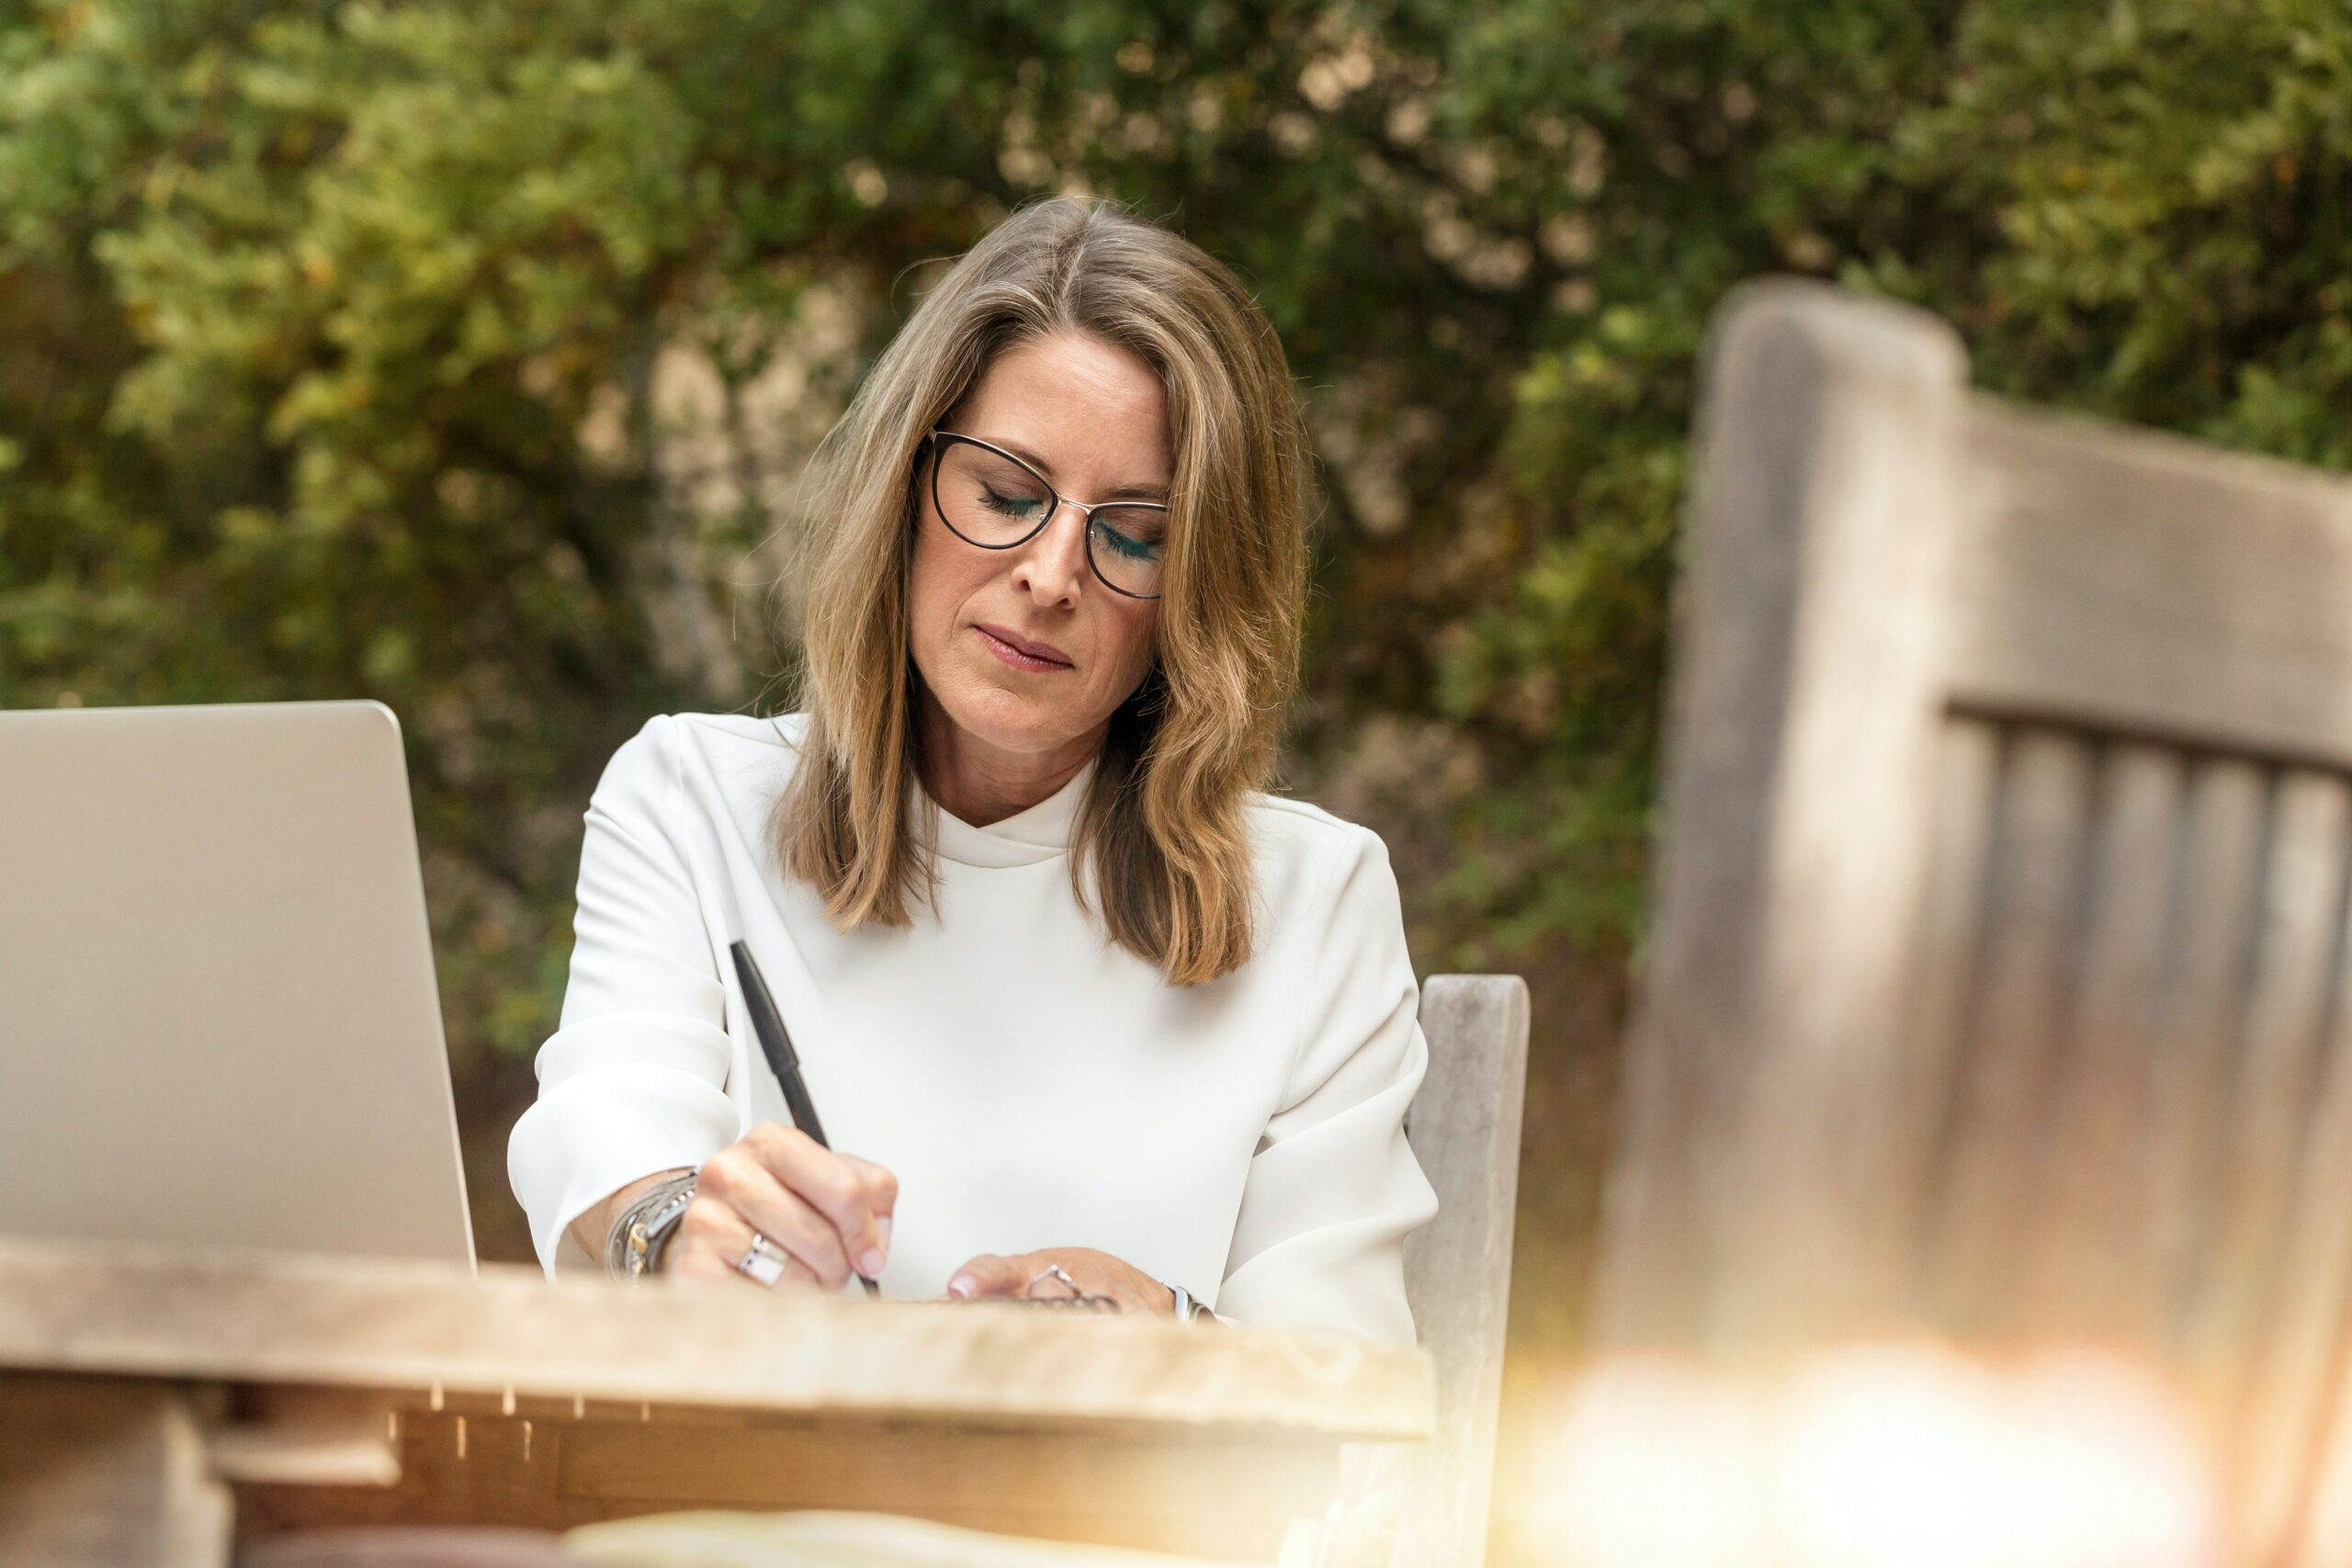 Travel Safety Tips: A woman sits at a desk writing